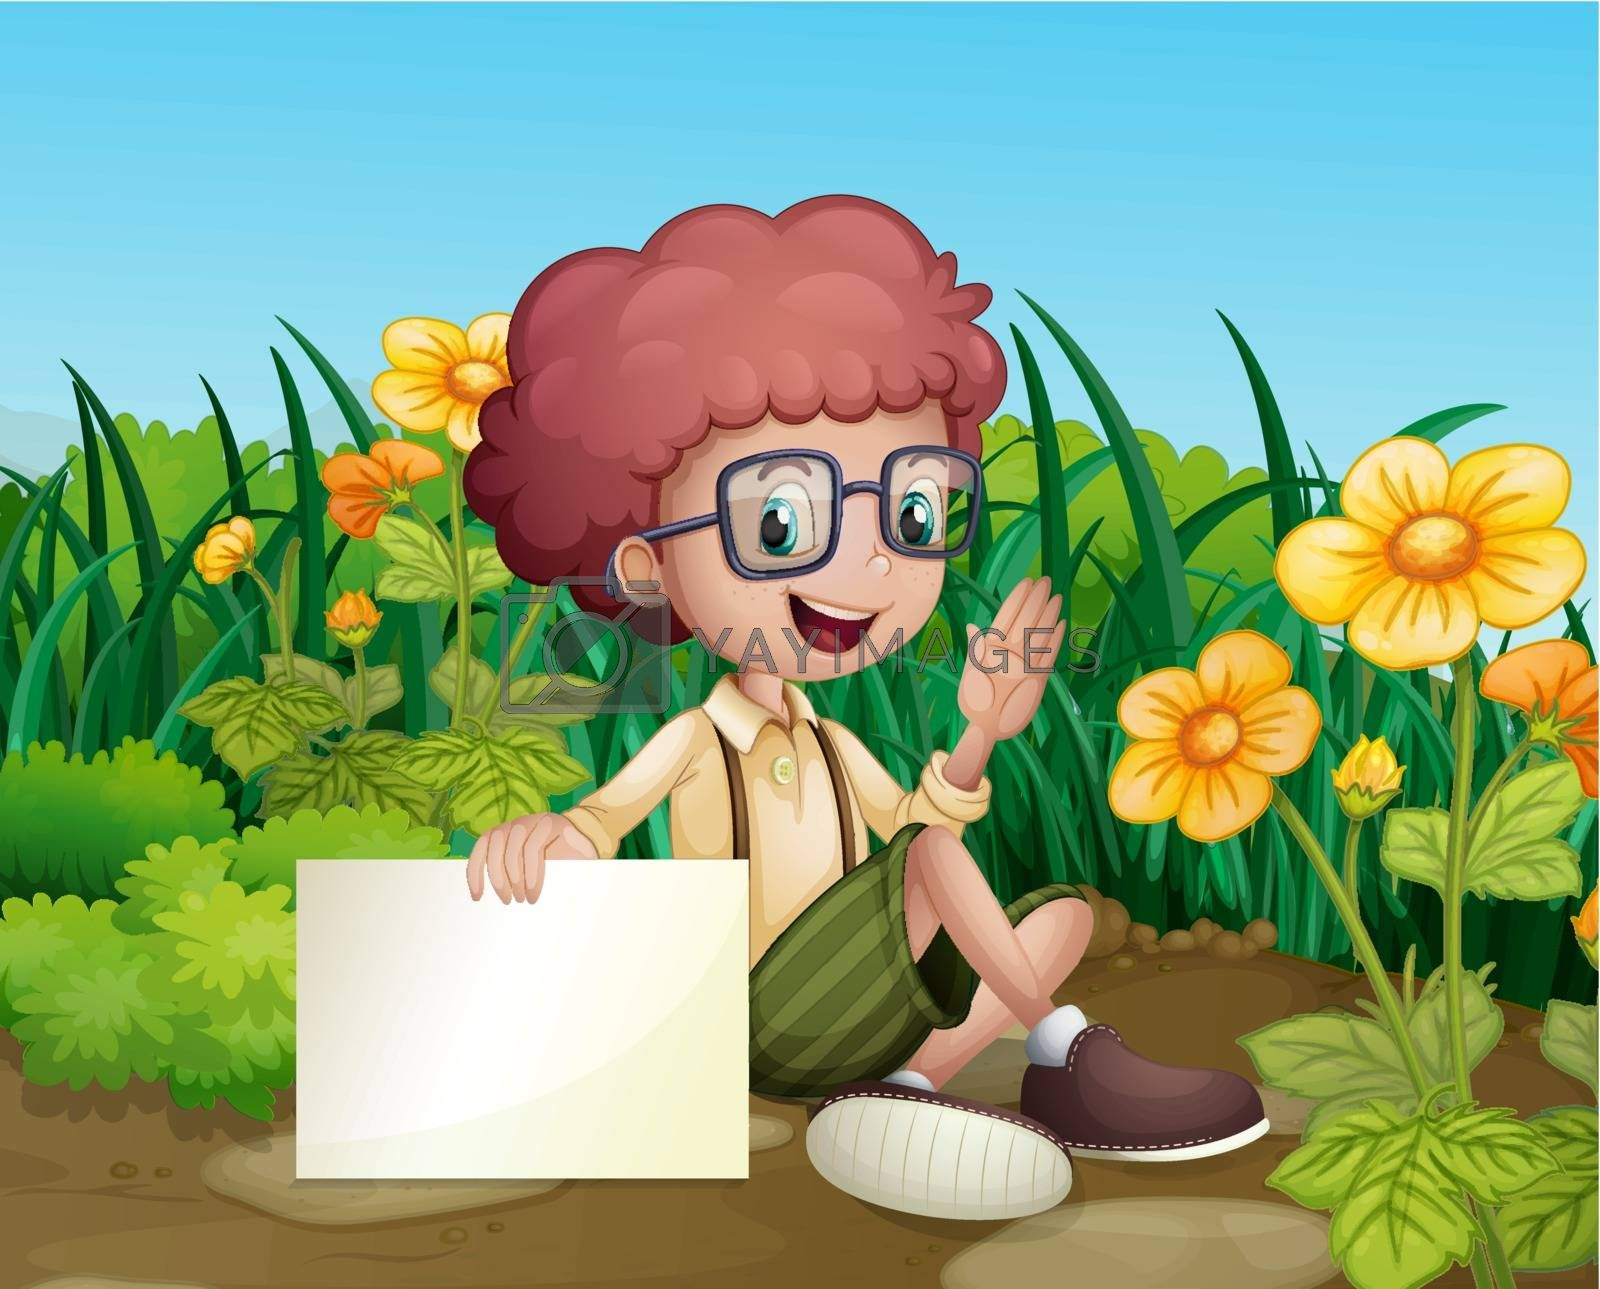 Illustration of a smiling young boy near the flowers holding an empty signboard